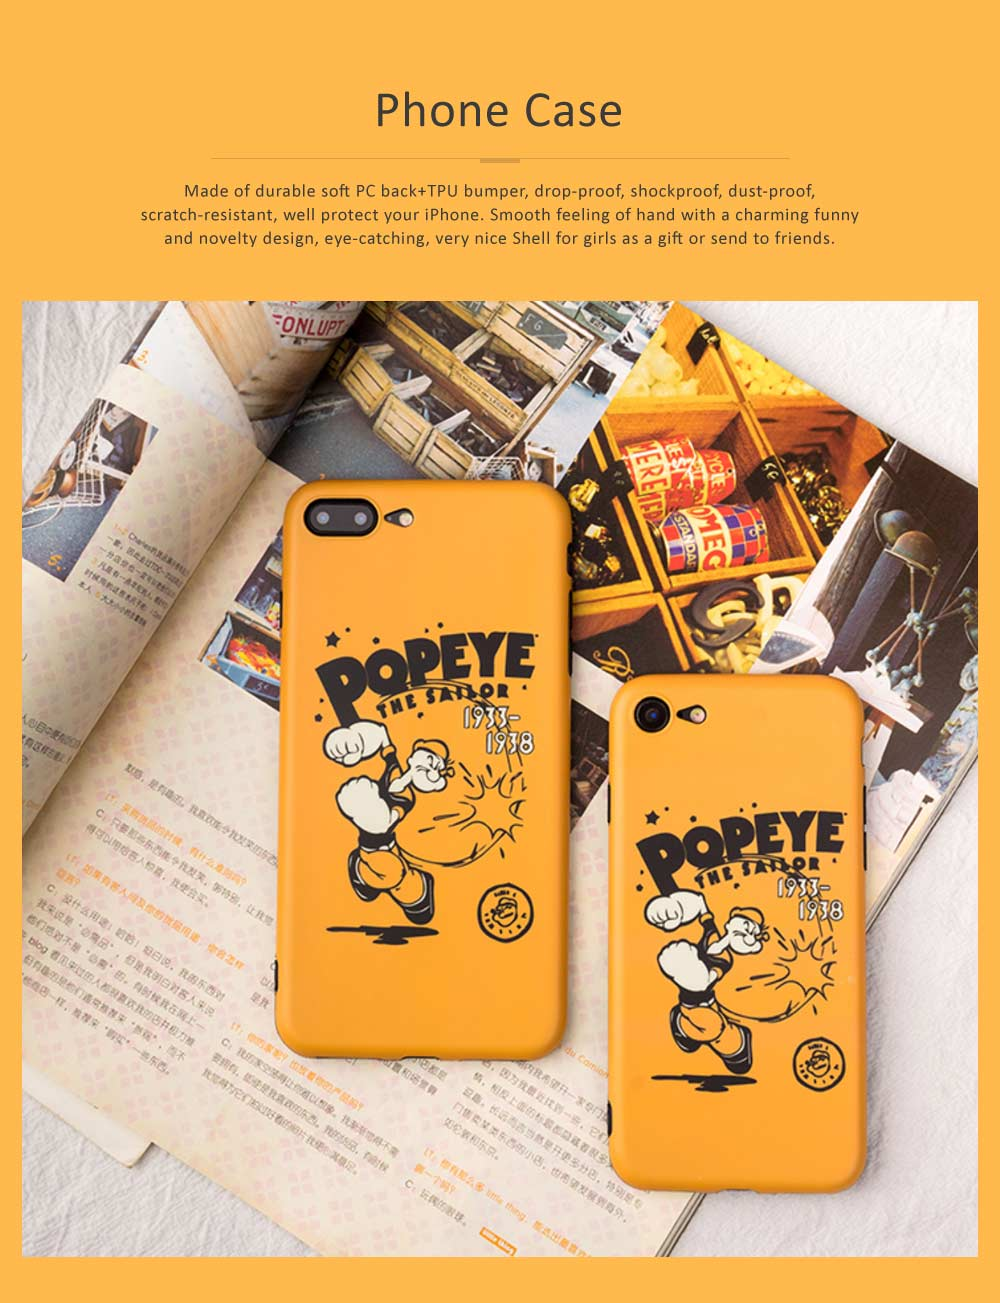 Cute Cartoon Phone Case Soft TPU Back Case Cover Bright Color Matte Phone Shell for iPhone 6/6s/6p/6sp/7/7p/8/8p/x 0